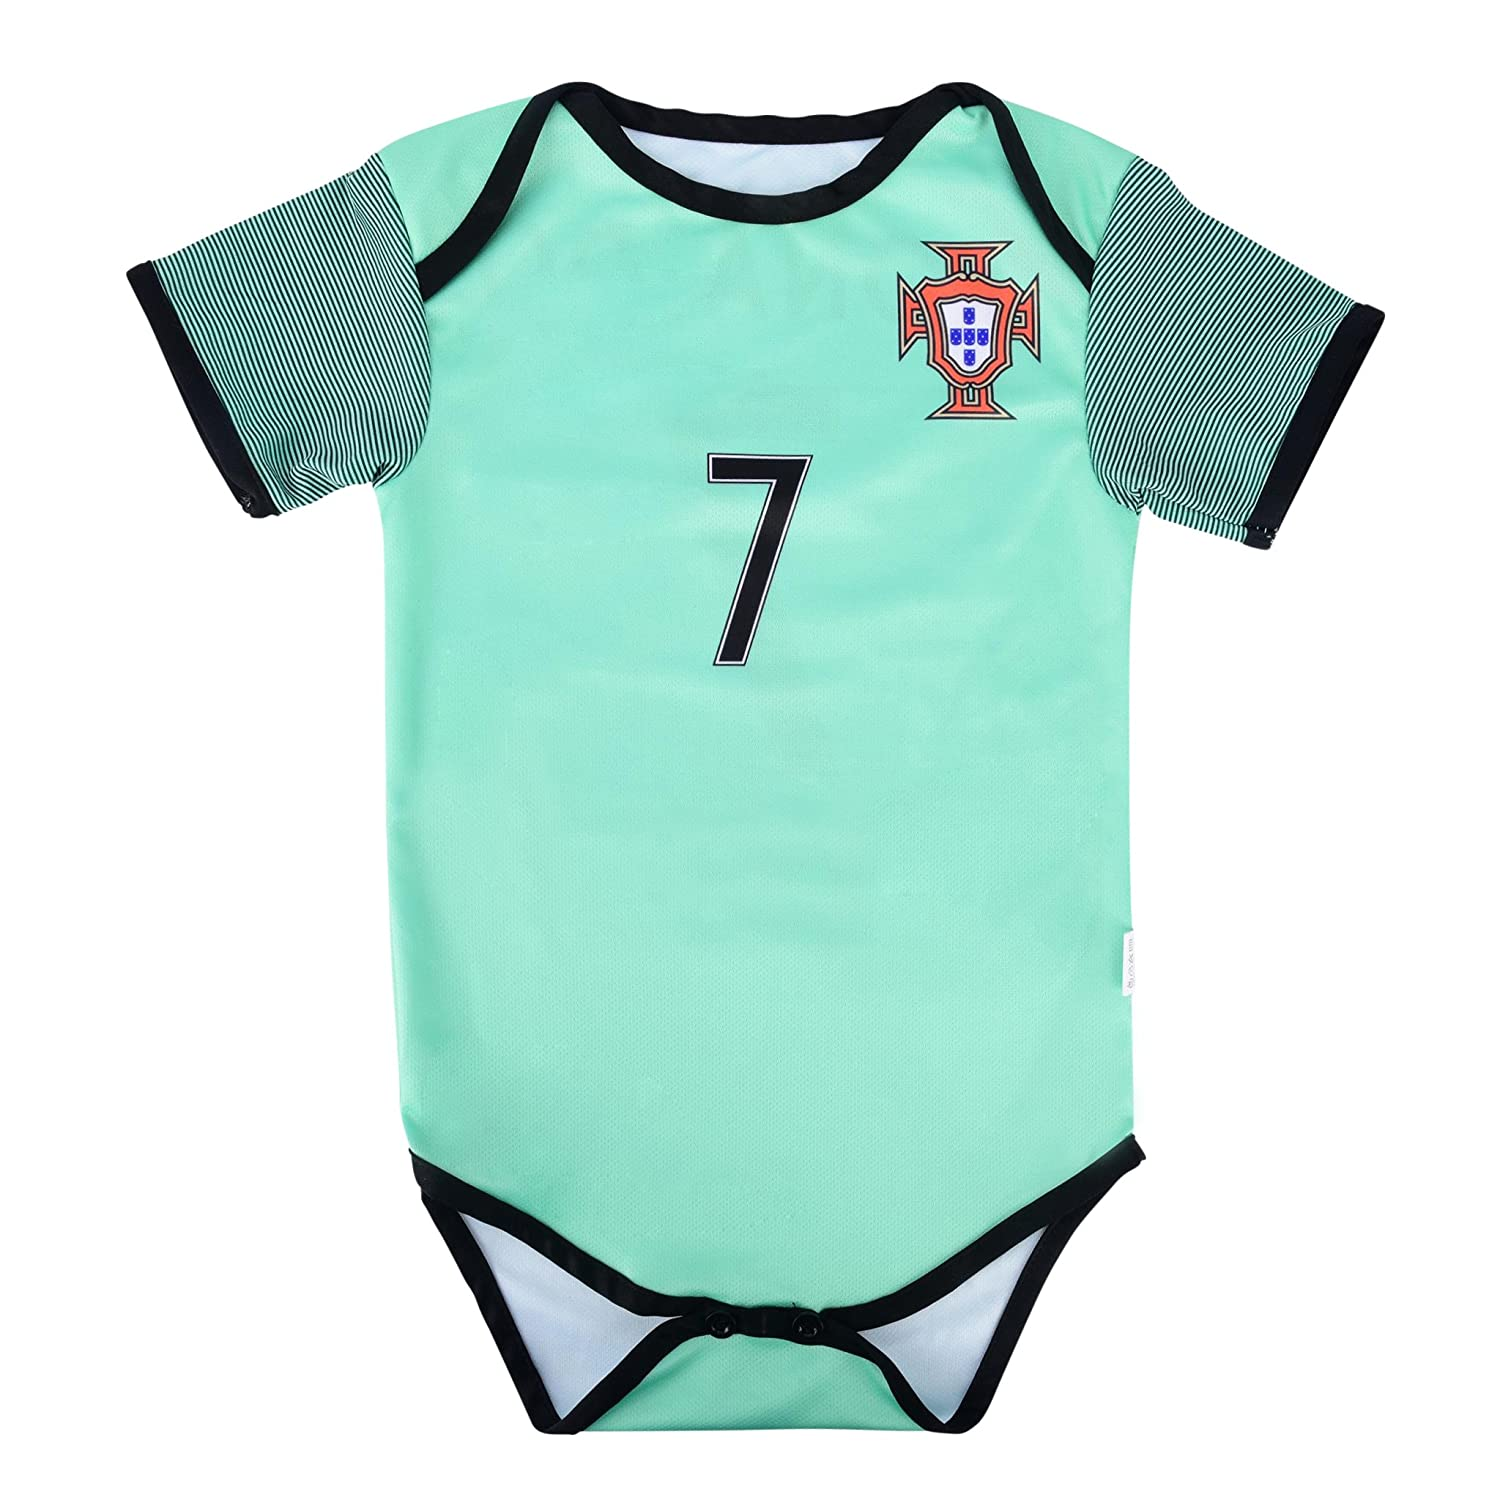 Amazon.com   World Cup Baby Cristiano Ronaldo  7 Portugal Soccer Jersey  Baby Infant and Toddler Onesie Romper Premium Quality   Sports   Outdoors 676d8e530